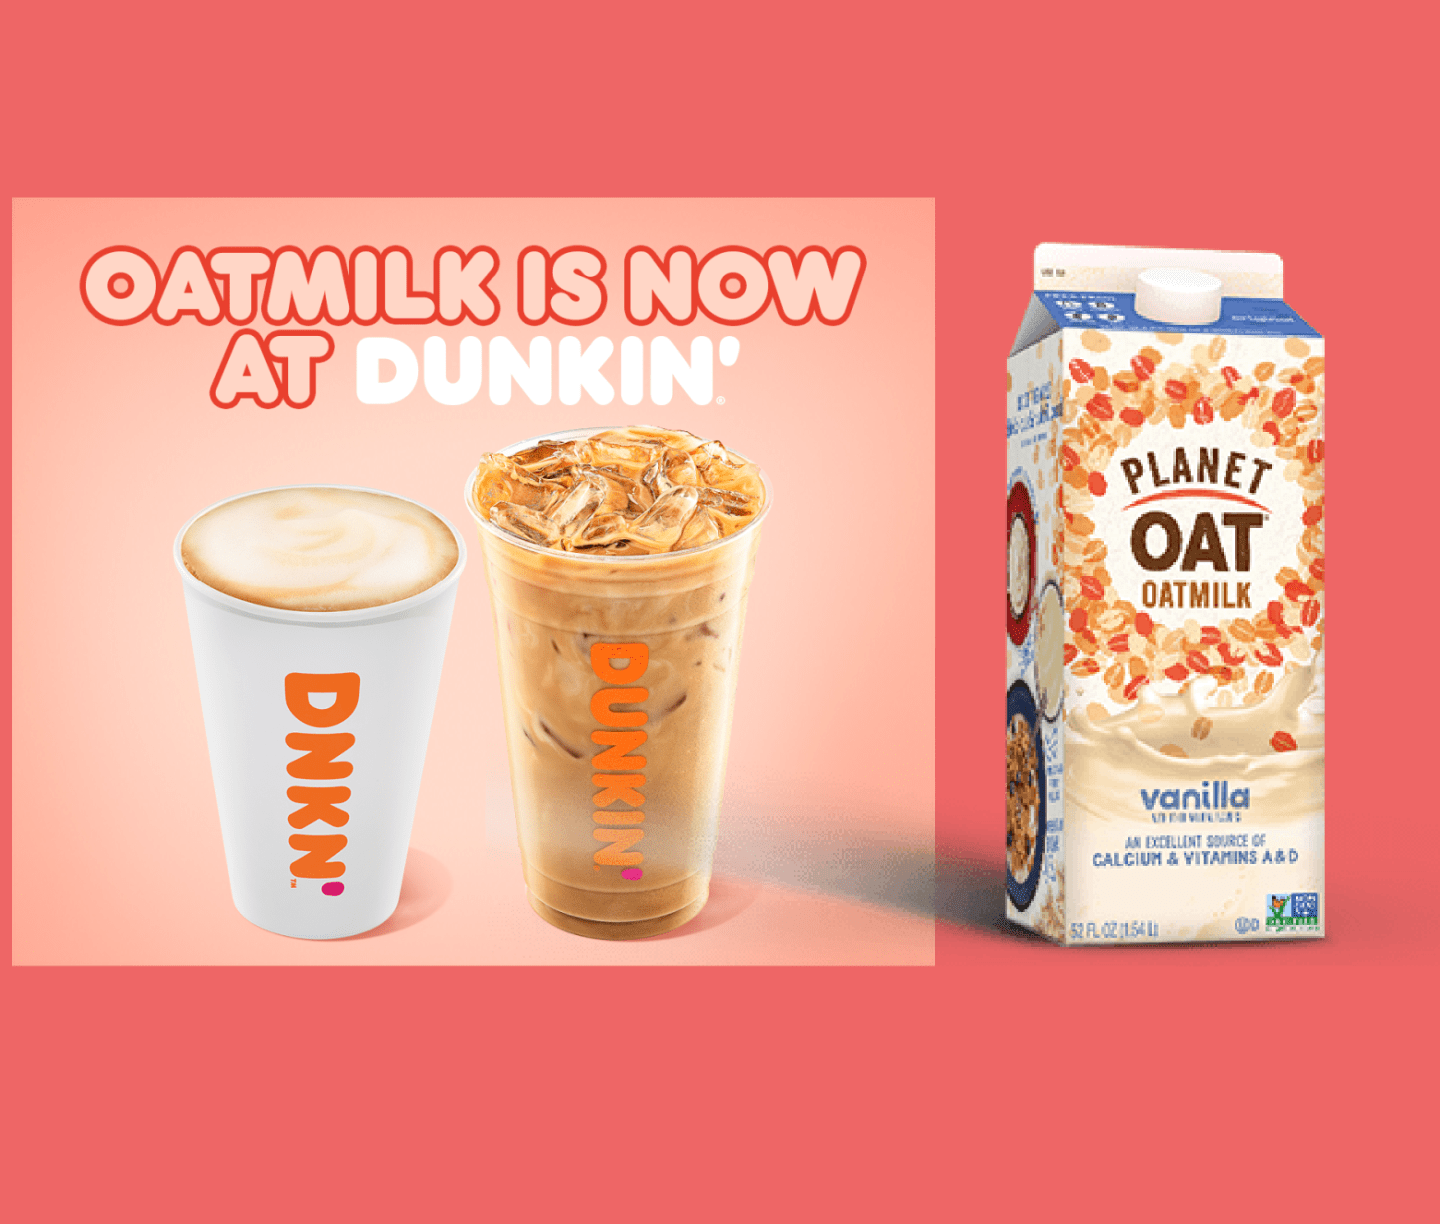 Dunkin Adds Oatmilk to its Menu Nationwide